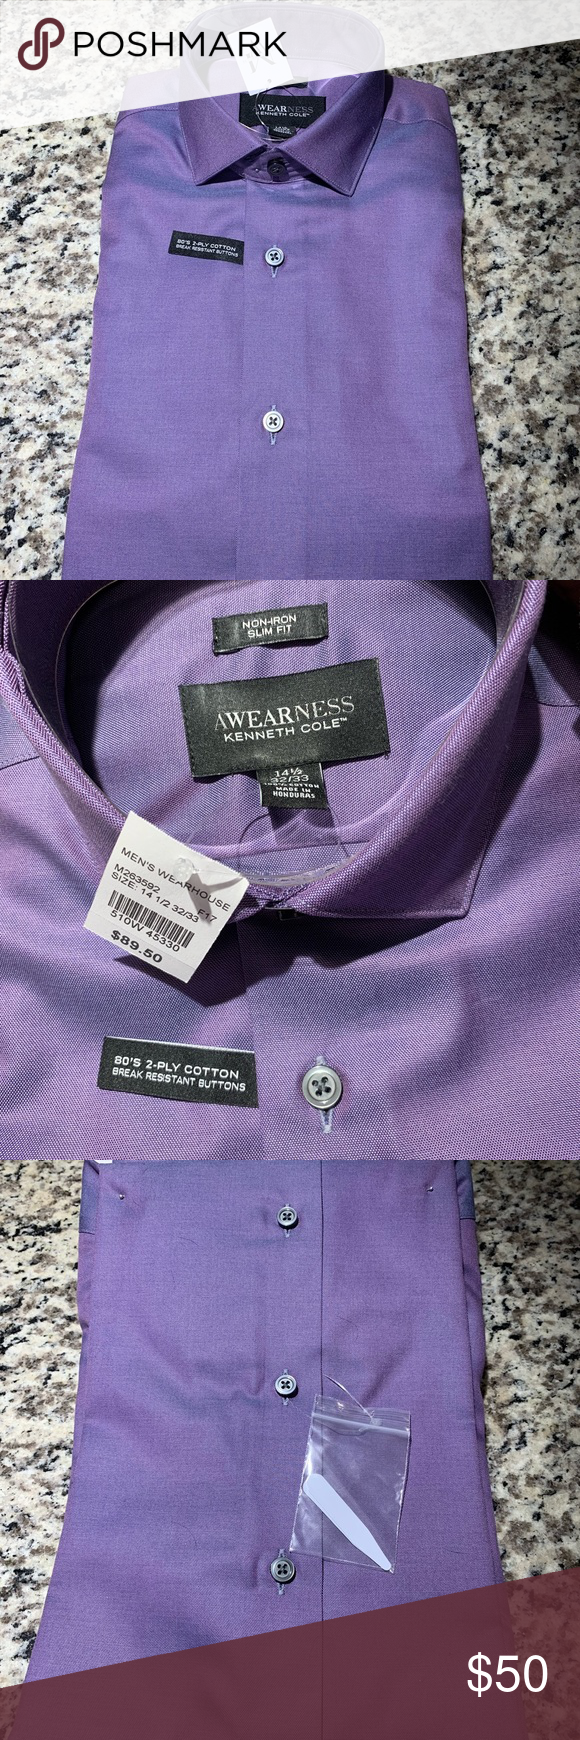 f247bc507a Purple men's dress shirt Awearness by Kenneth Cole men's slim fit dress  shirt. It picks up on purple and blue tones depending on the light. Never  worn.